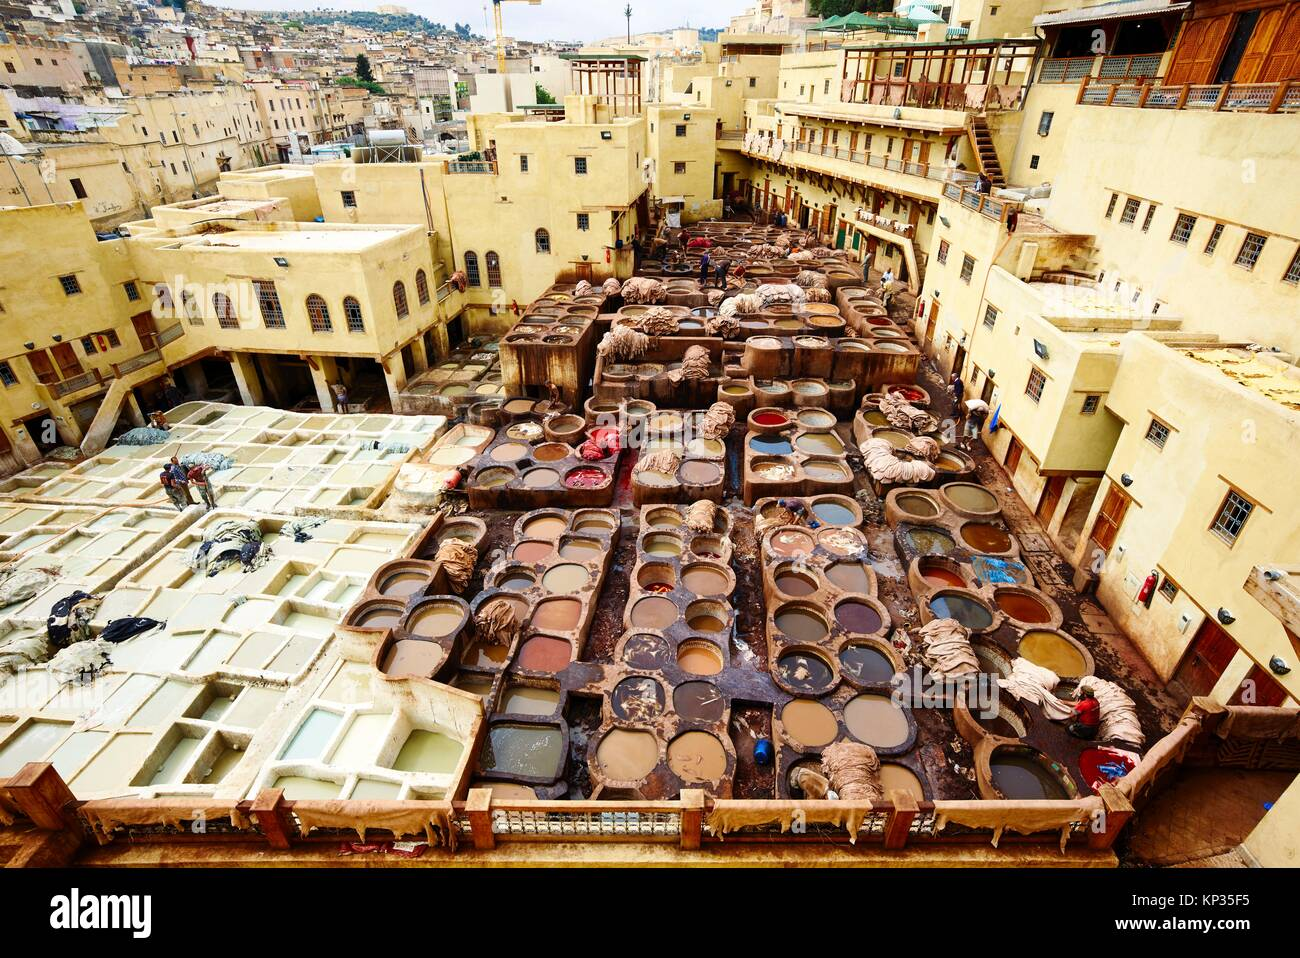 Chaouwara Tanneries in the medina of Fez, Morocco - Stock Image